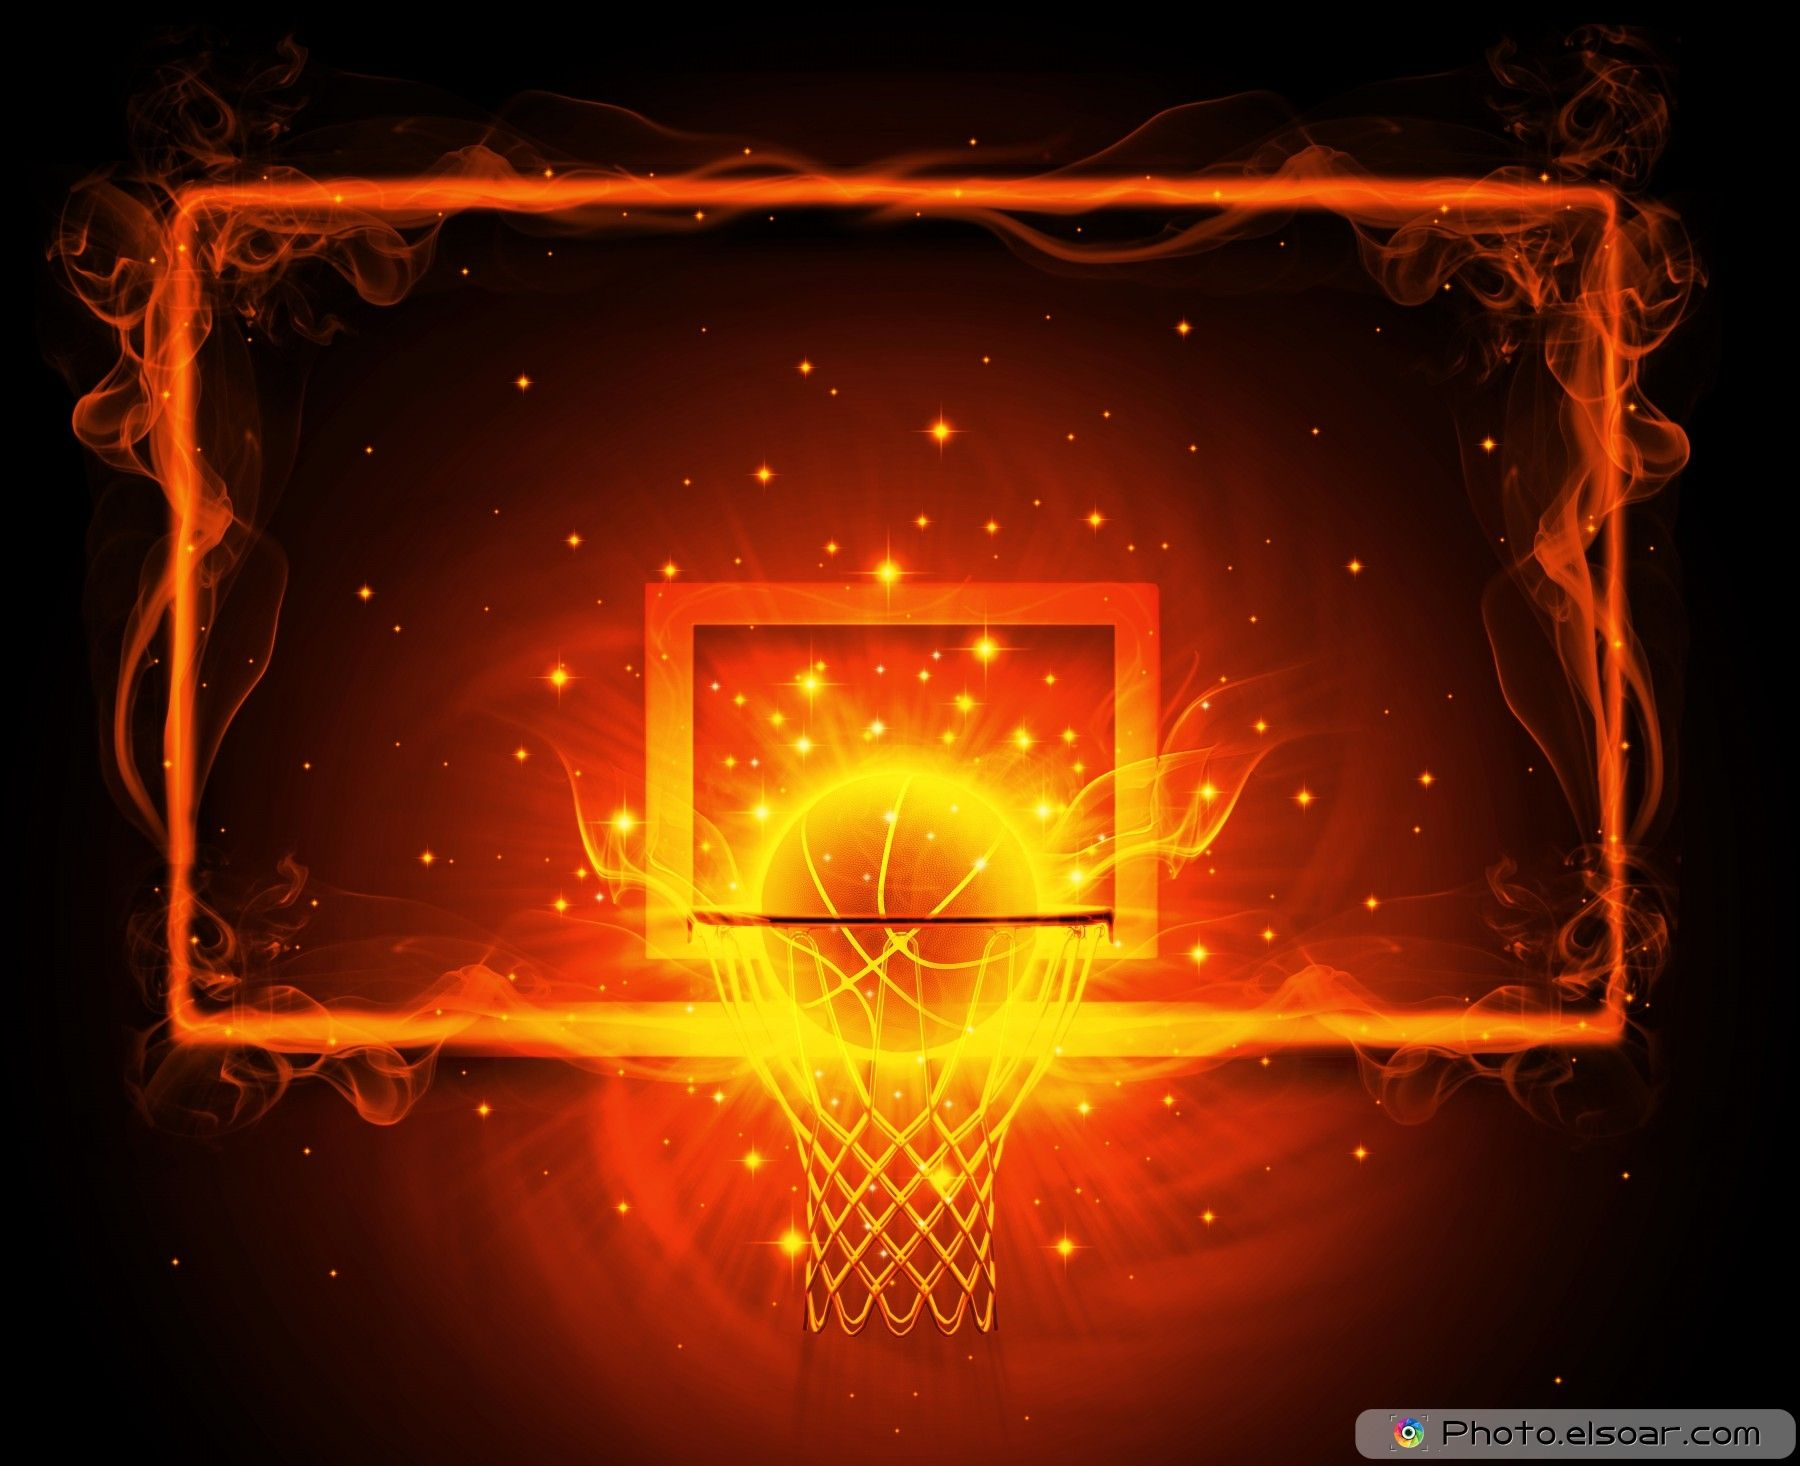 Basketball Game With Design Elements In Pictures Elsoar Cool Basketball Pictures Basketball Wallpaper Basketball Pictures